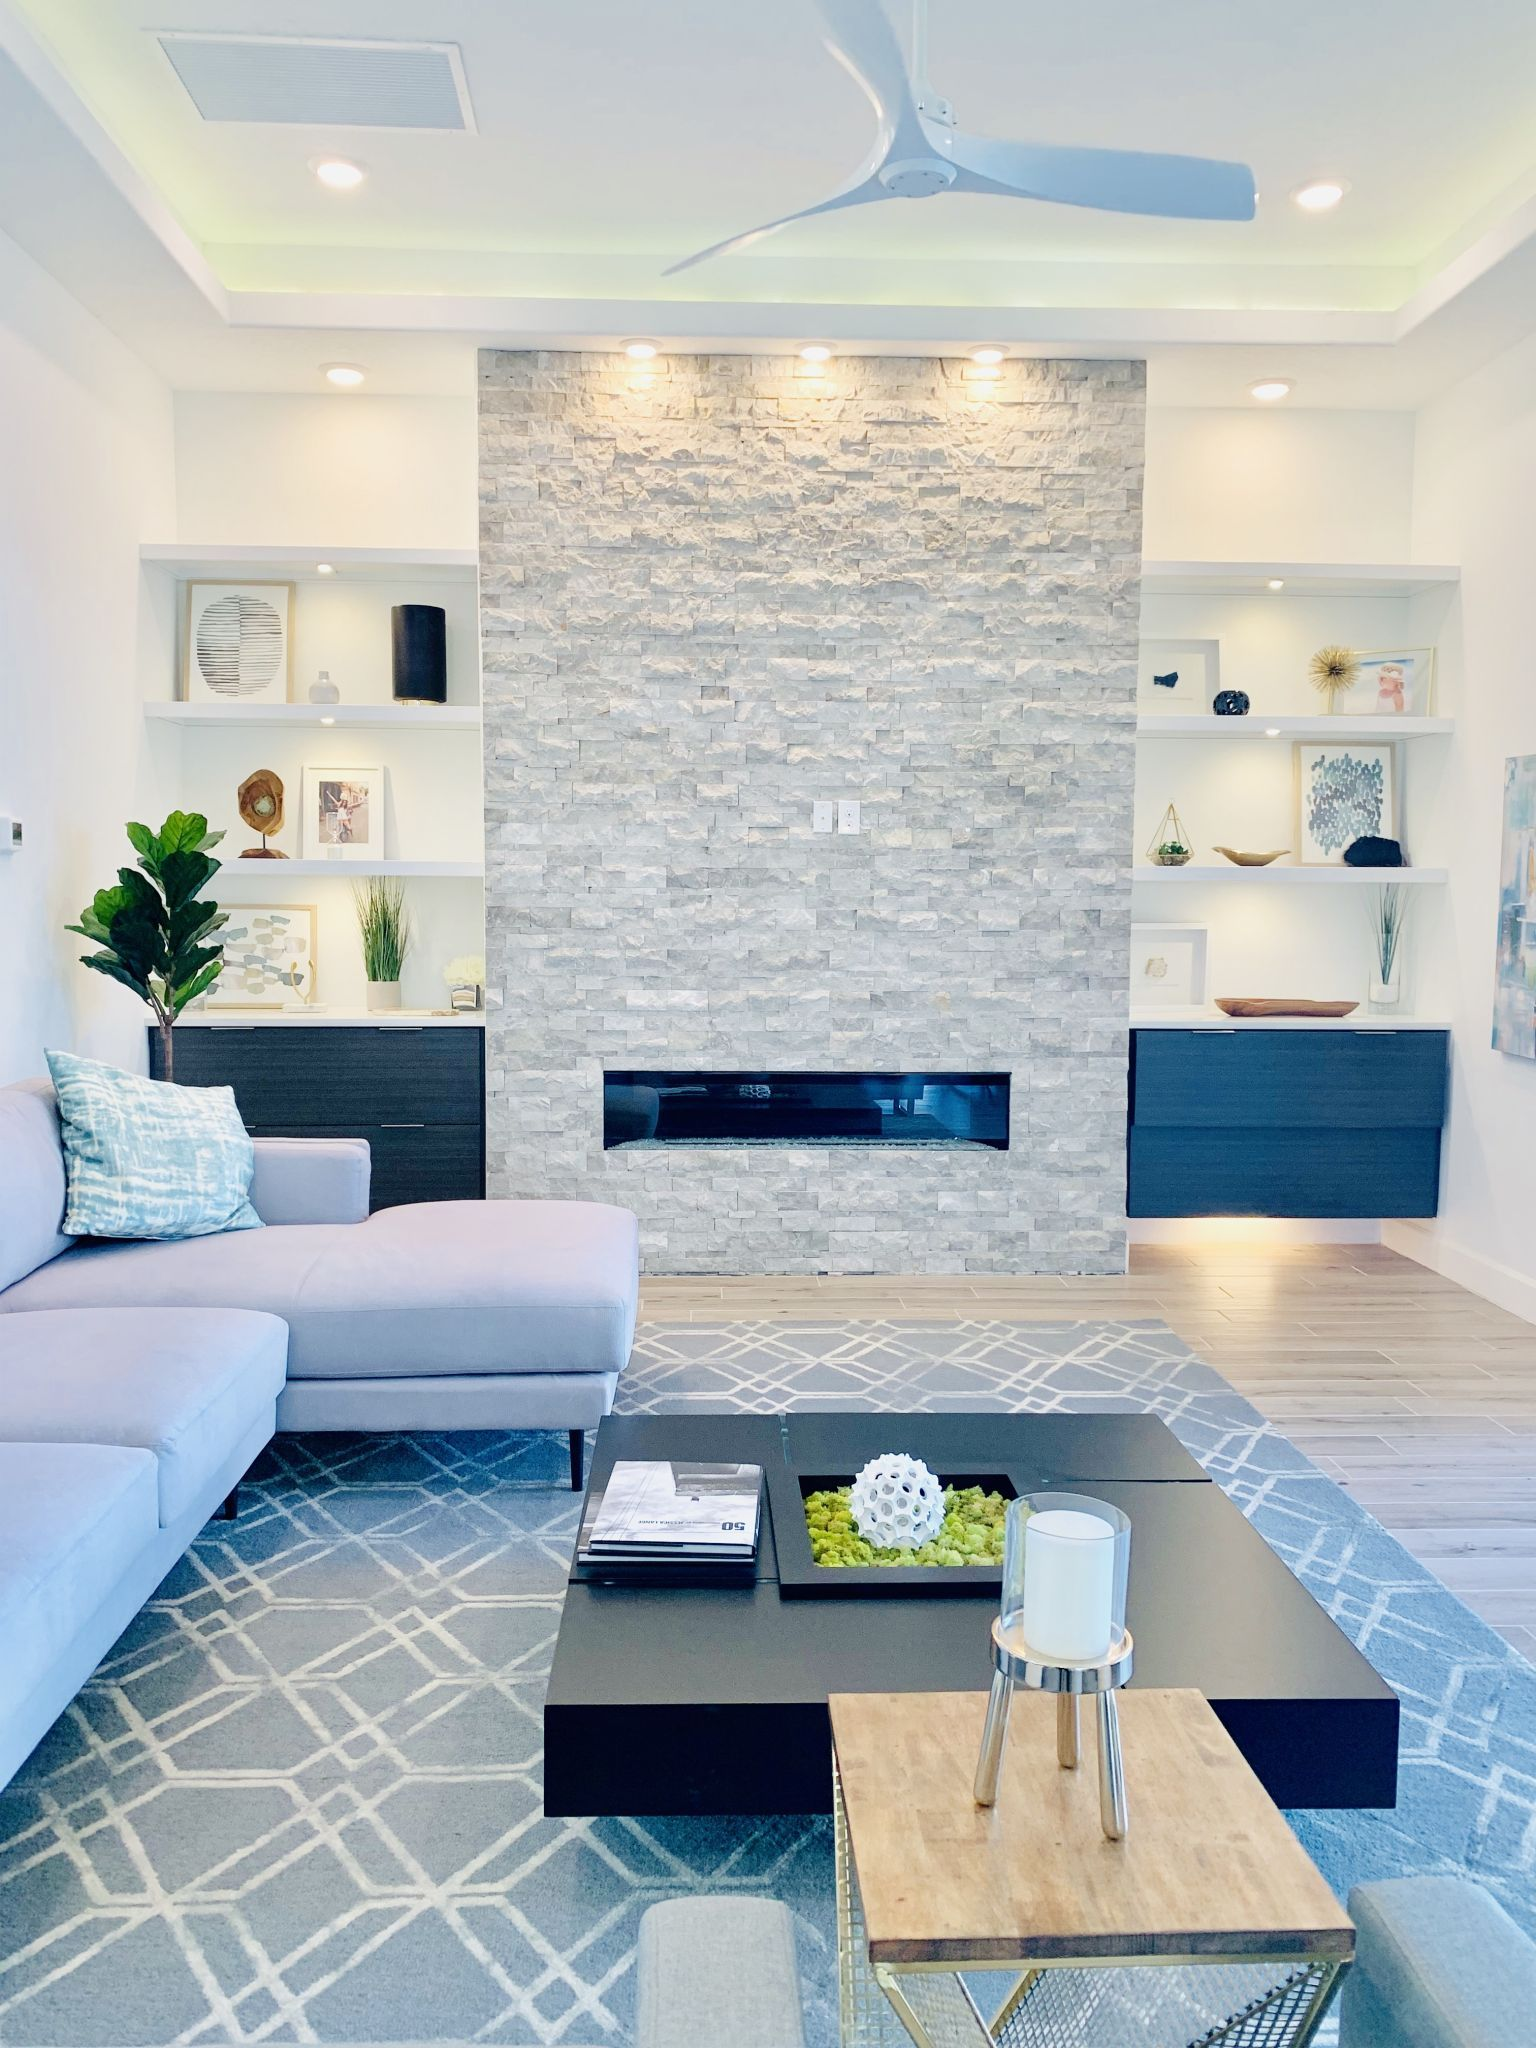 There are a few ways to add natural elements to your home design.  Some can be textured walls, flooring, or lighting.  Check out additional options that may inspire you for your home.  #homedecor #natural #designideas